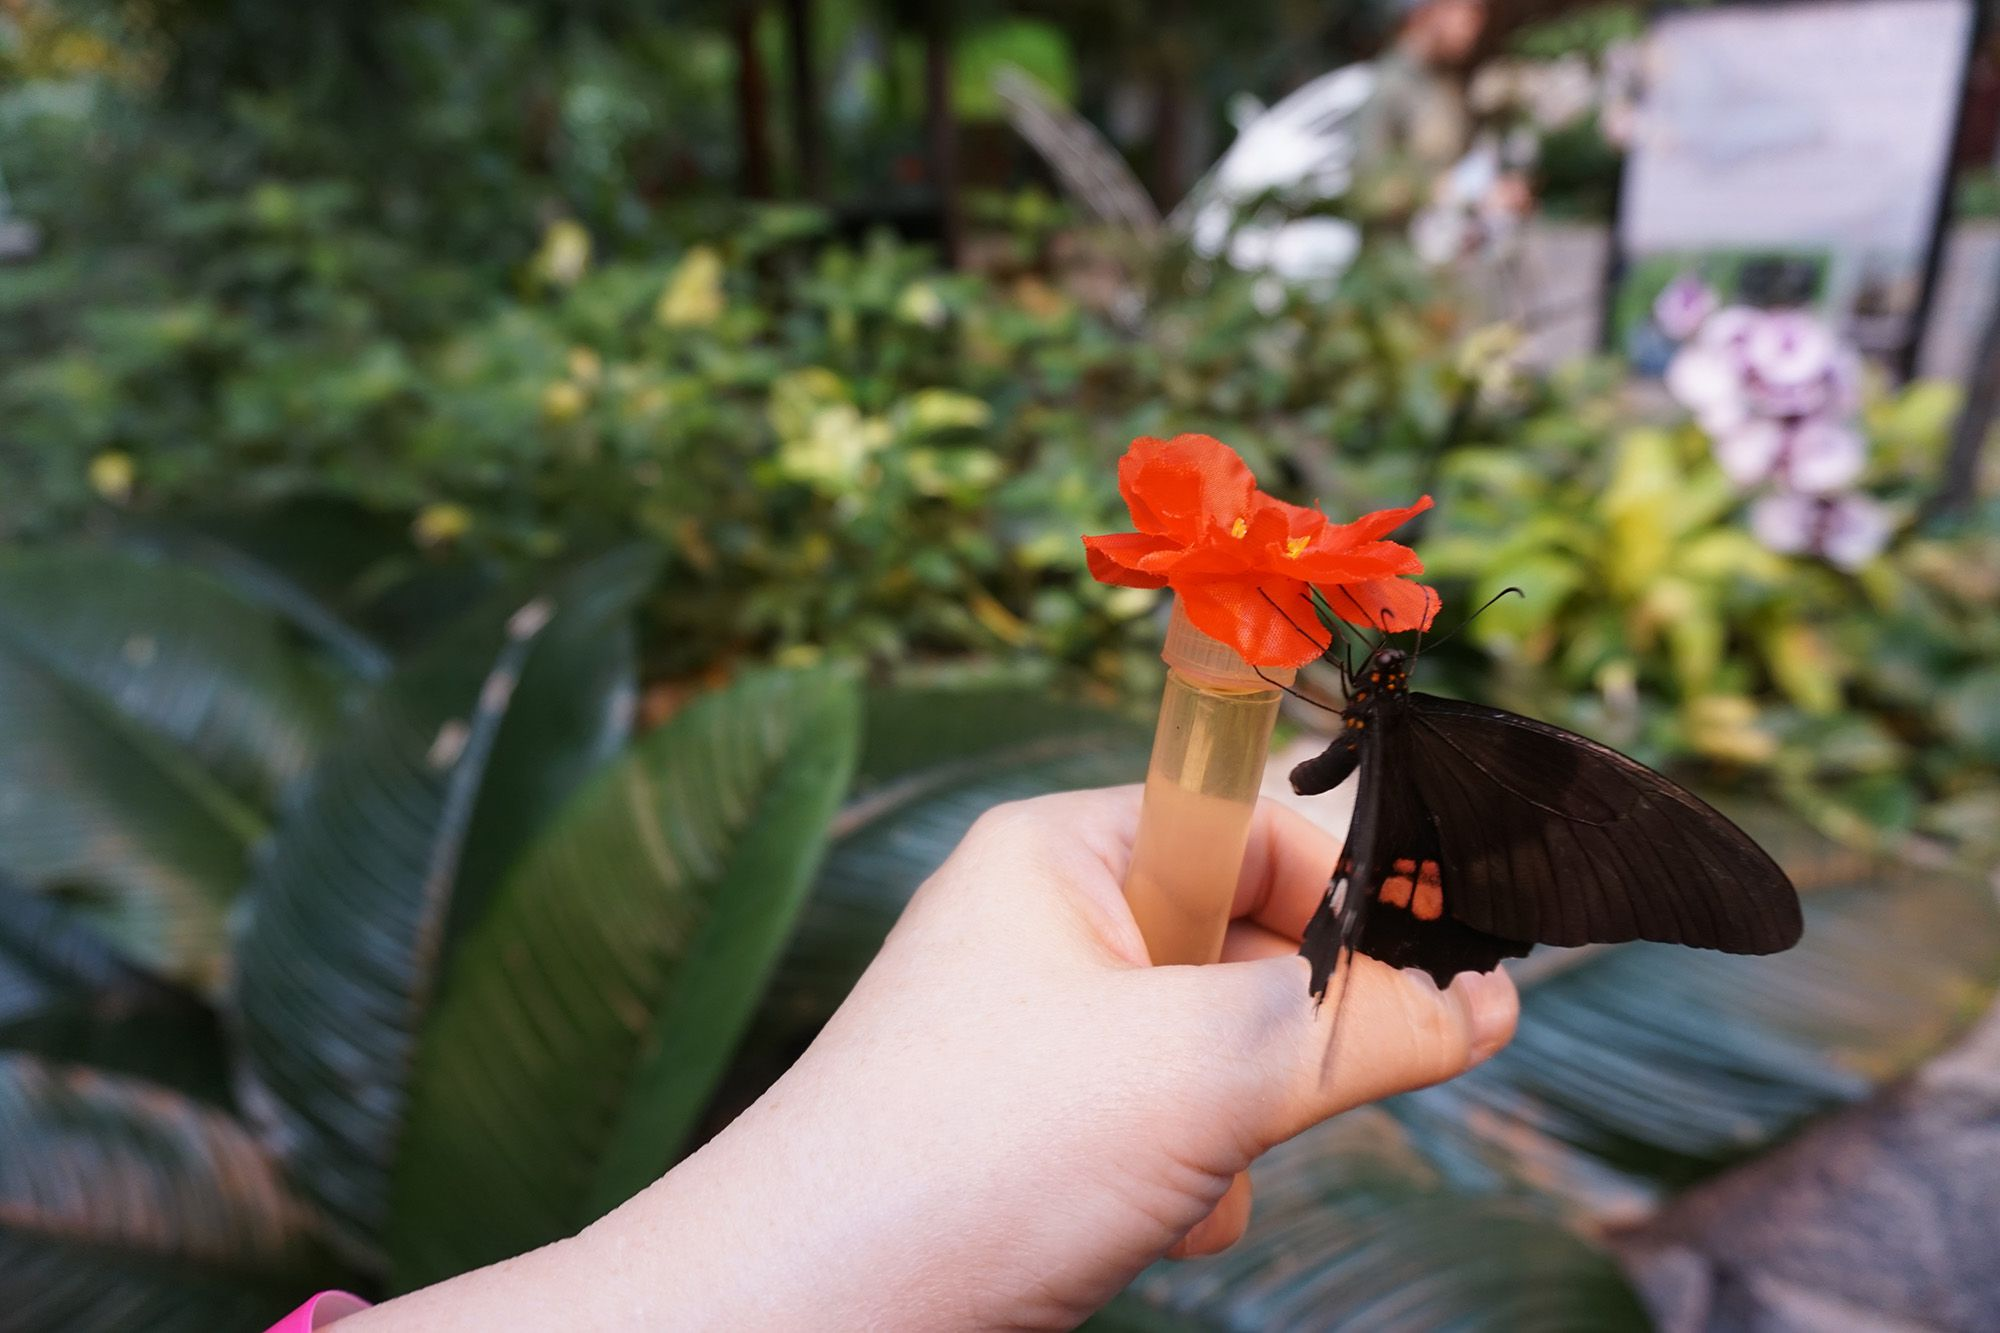 Feeding Butterflies at Butterfly Palace and Rainforest Adventure